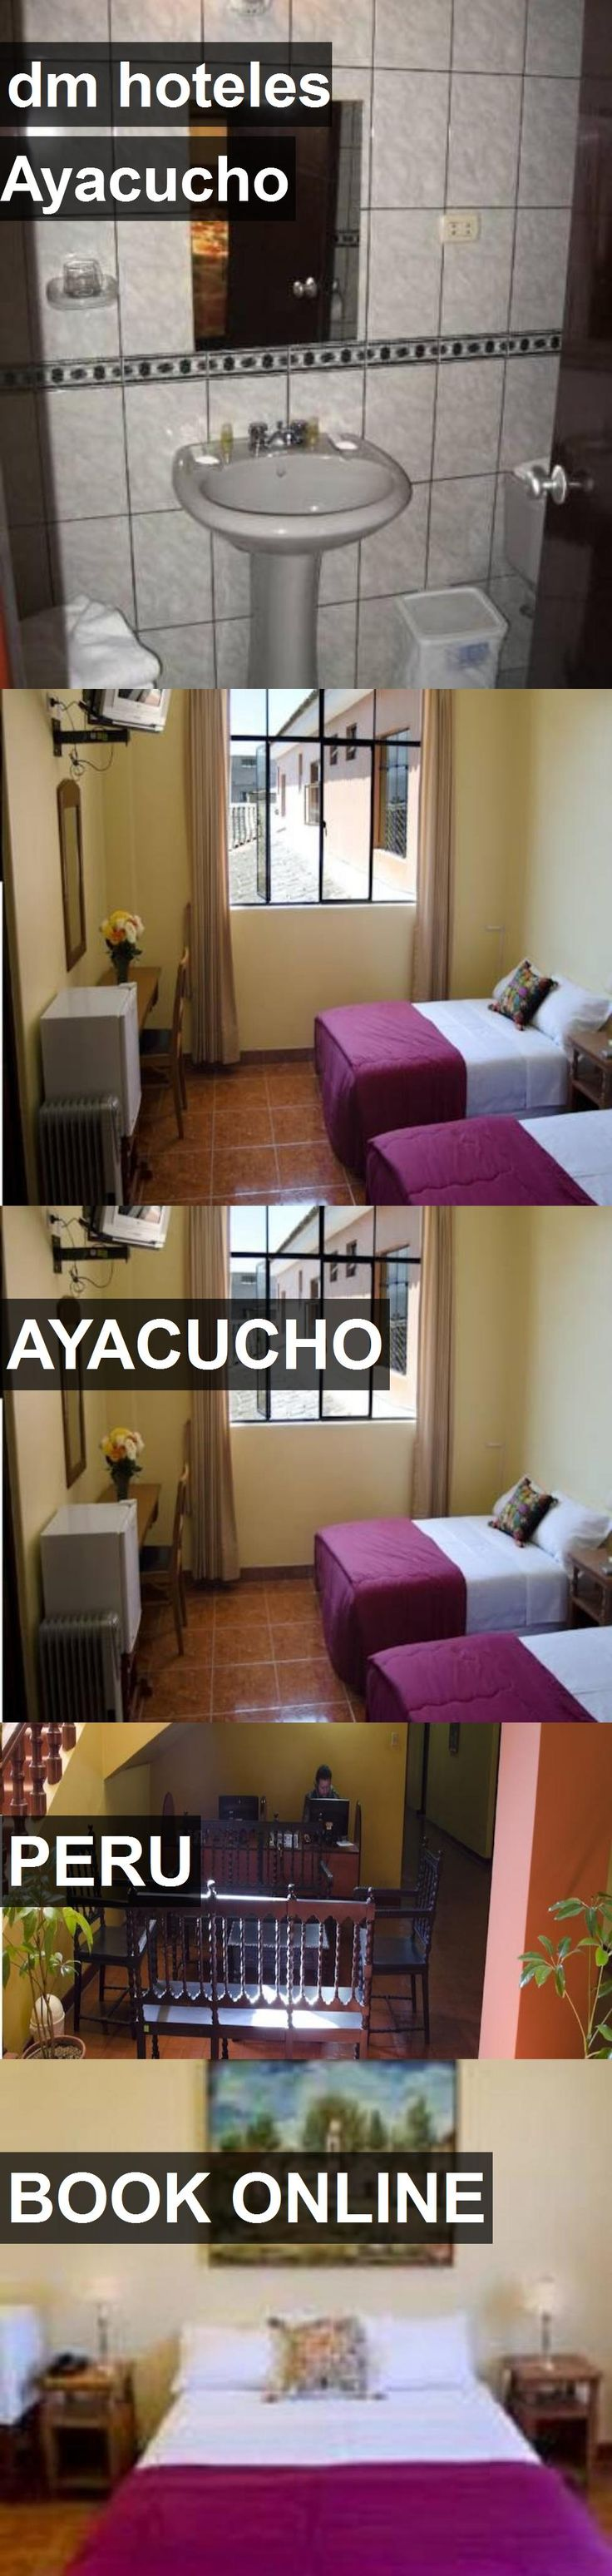 dm hoteles Ayacucho in Ayacucho, Peru. For more information, photos, reviews and best prices please follow the link. #Peru #Ayacucho #travel #vacation #hotel